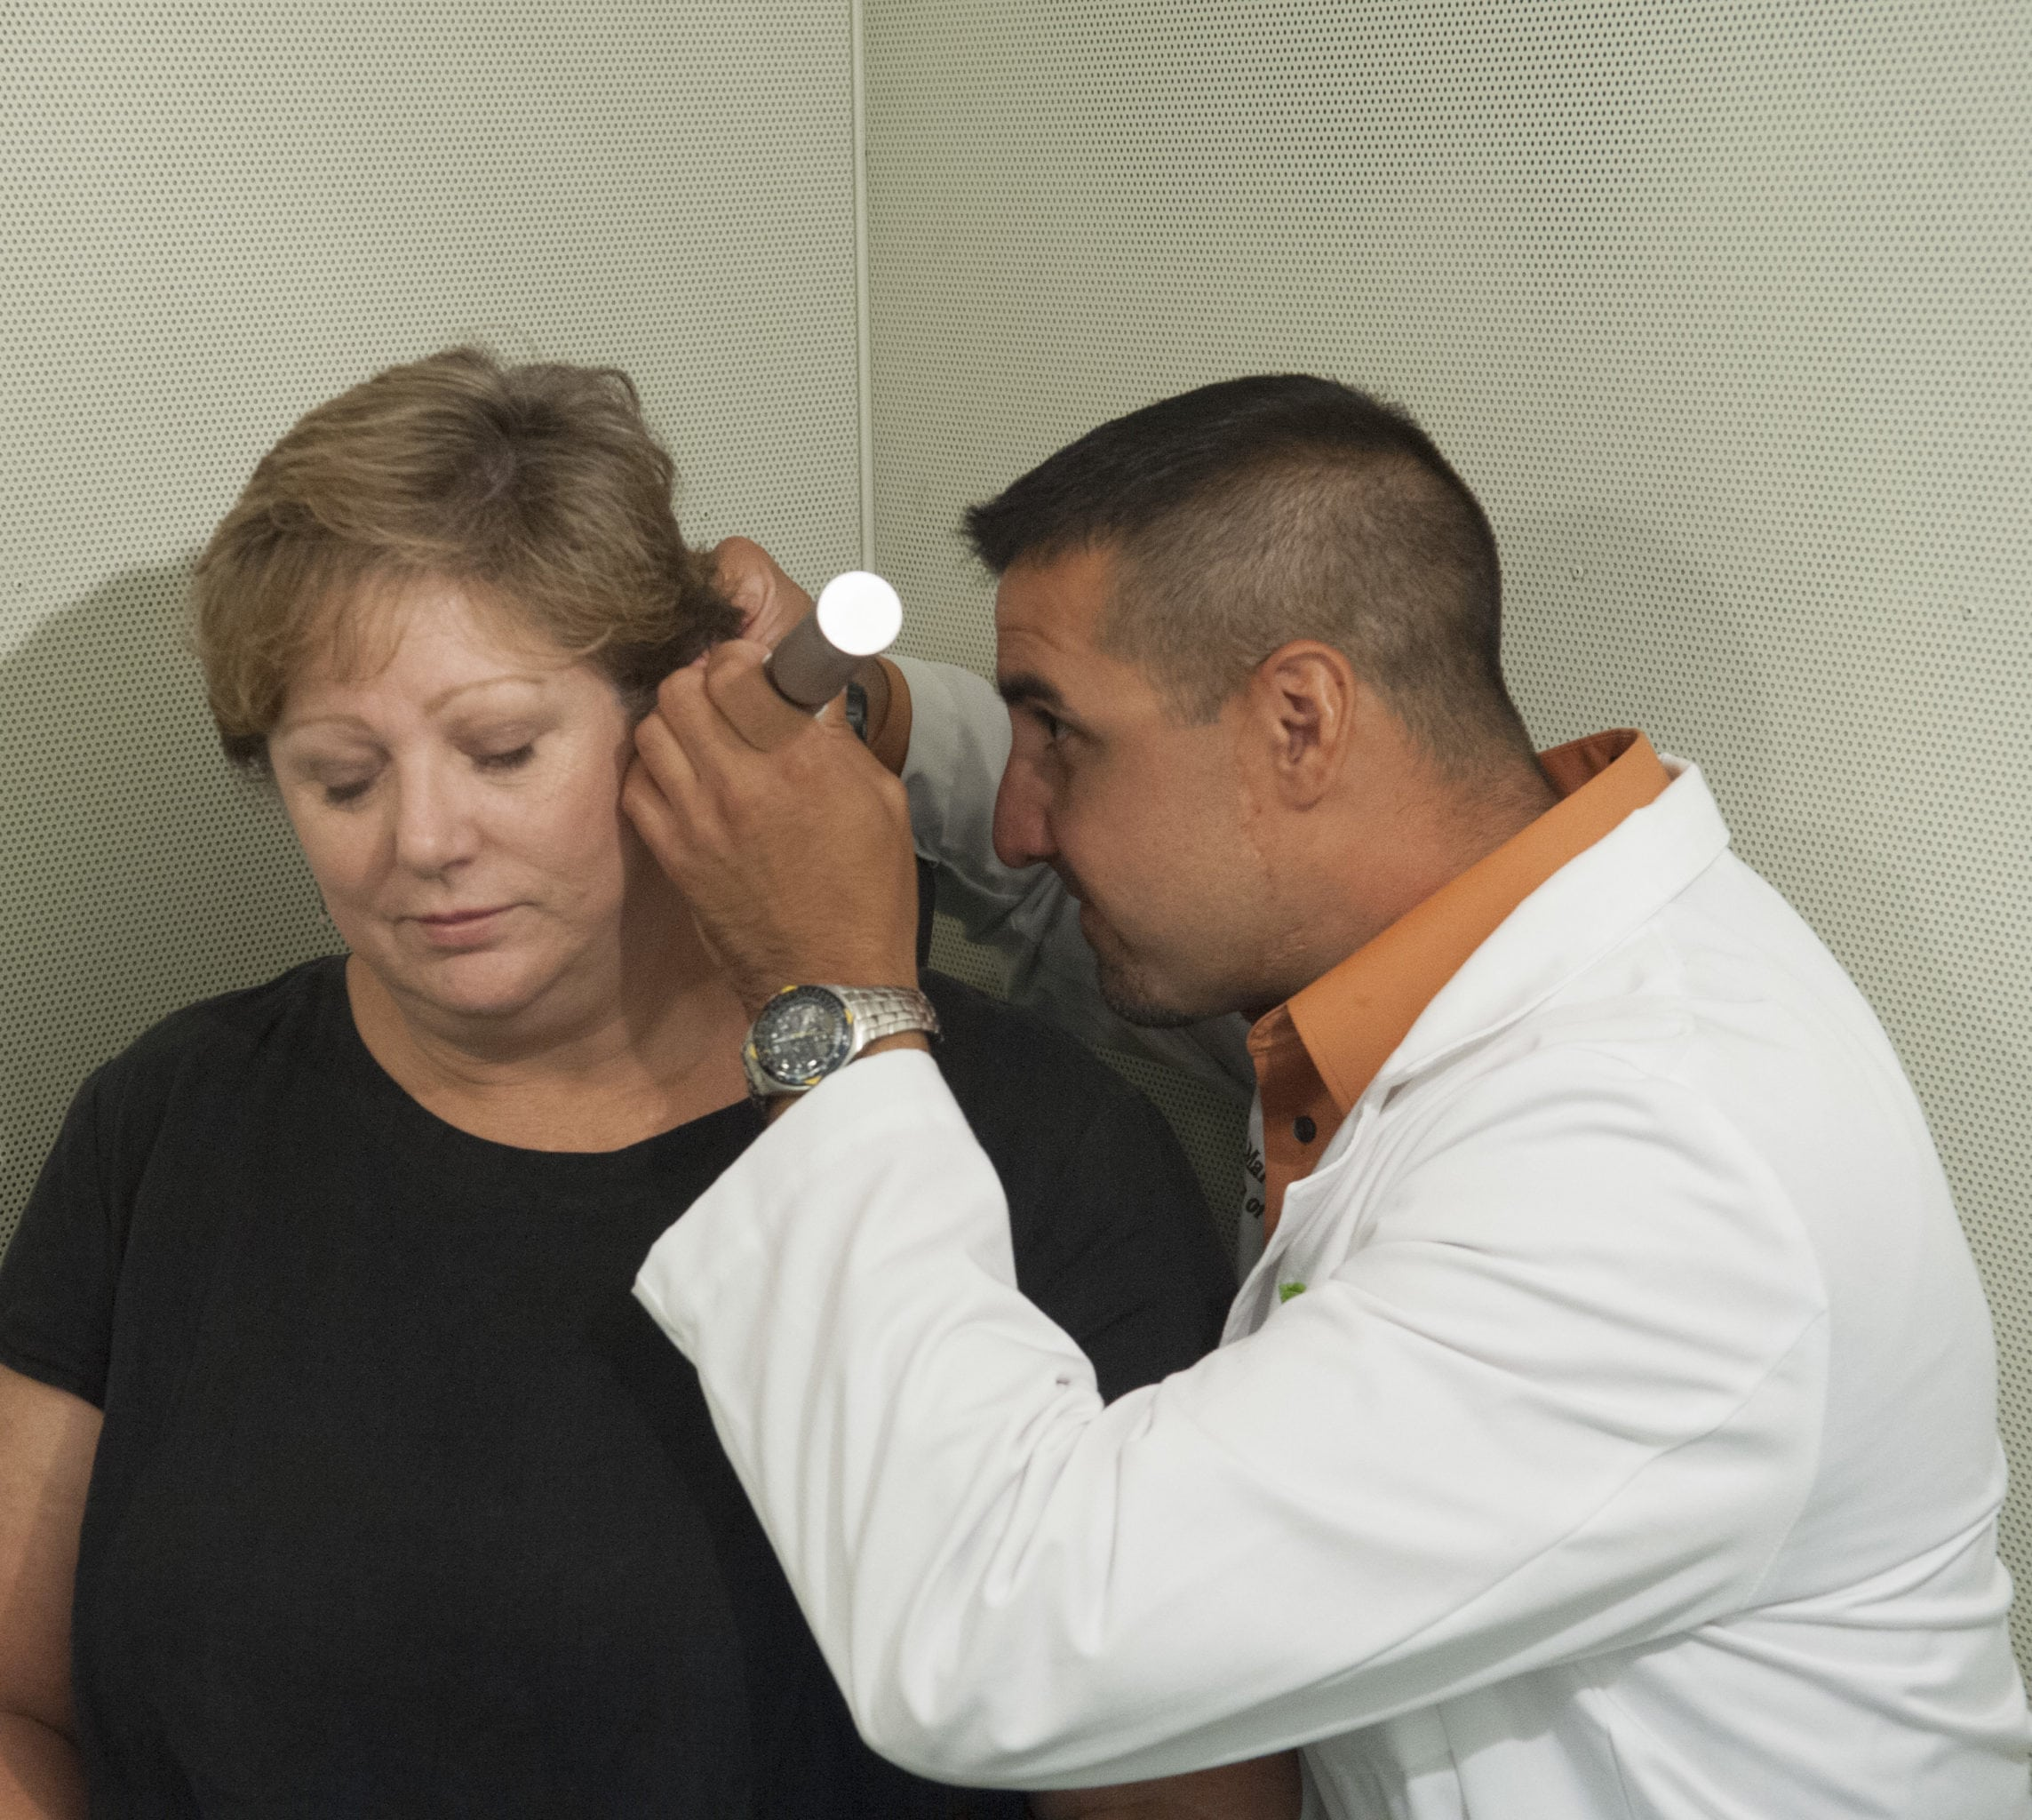 Audiologist looking into ears